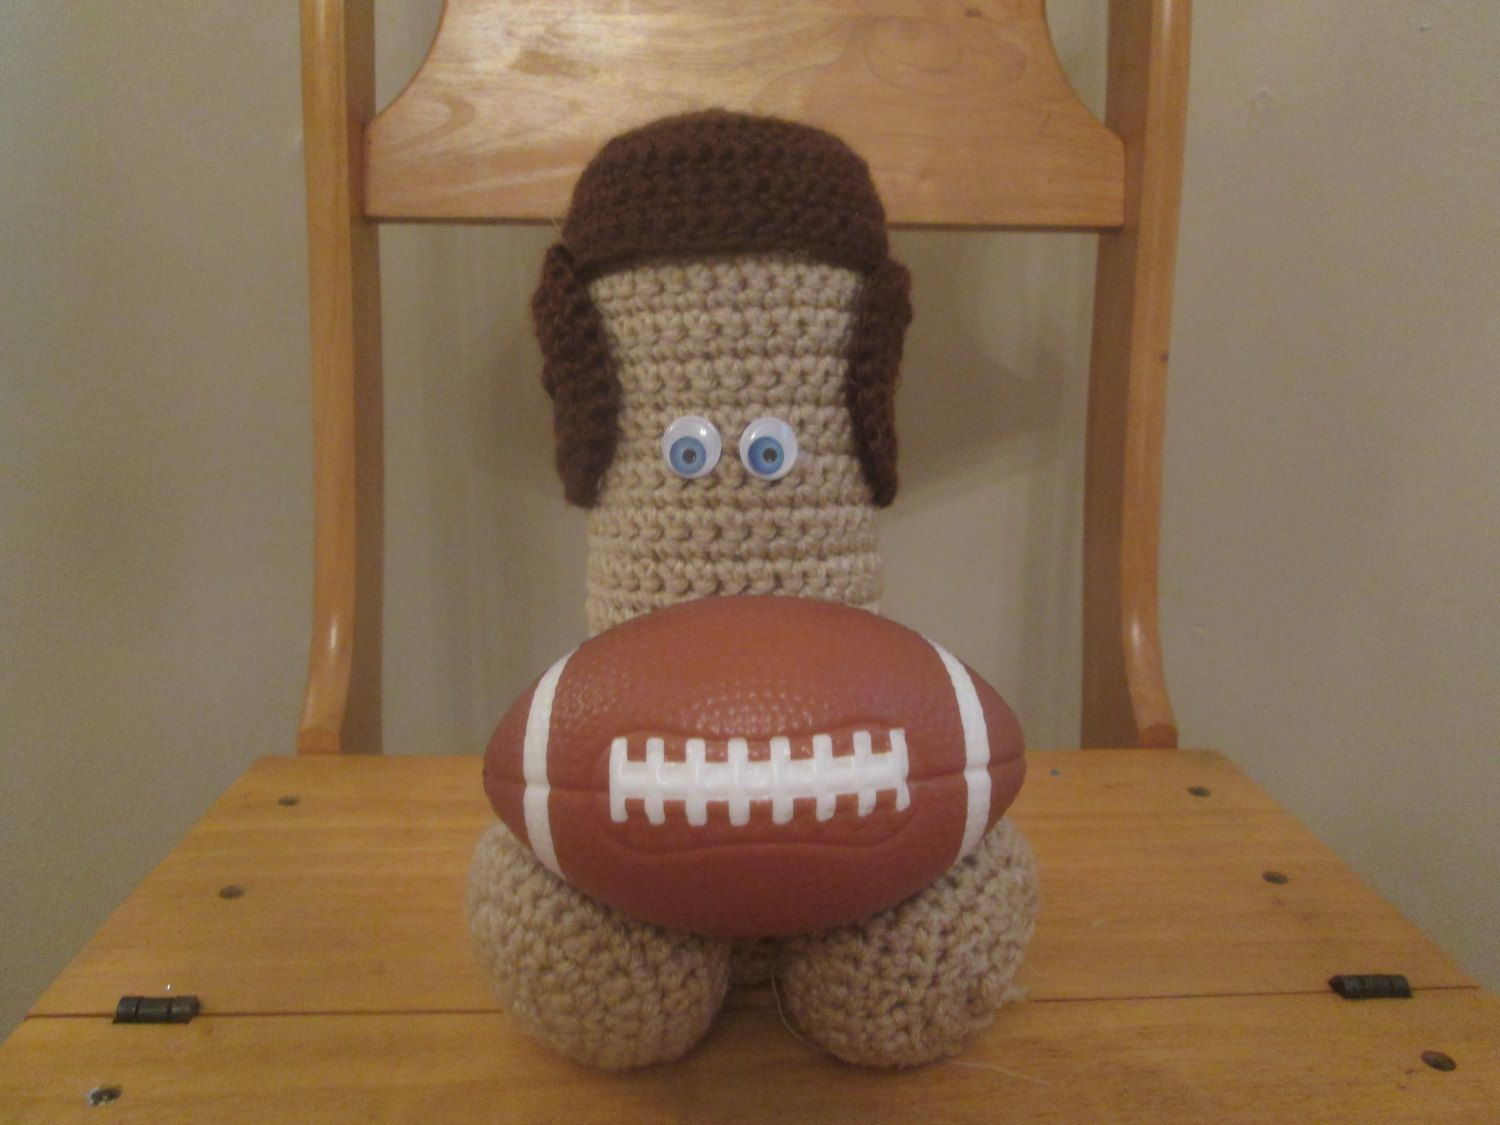 Man Cave Gag Gifts : Football penis fan gag gift man cave decor